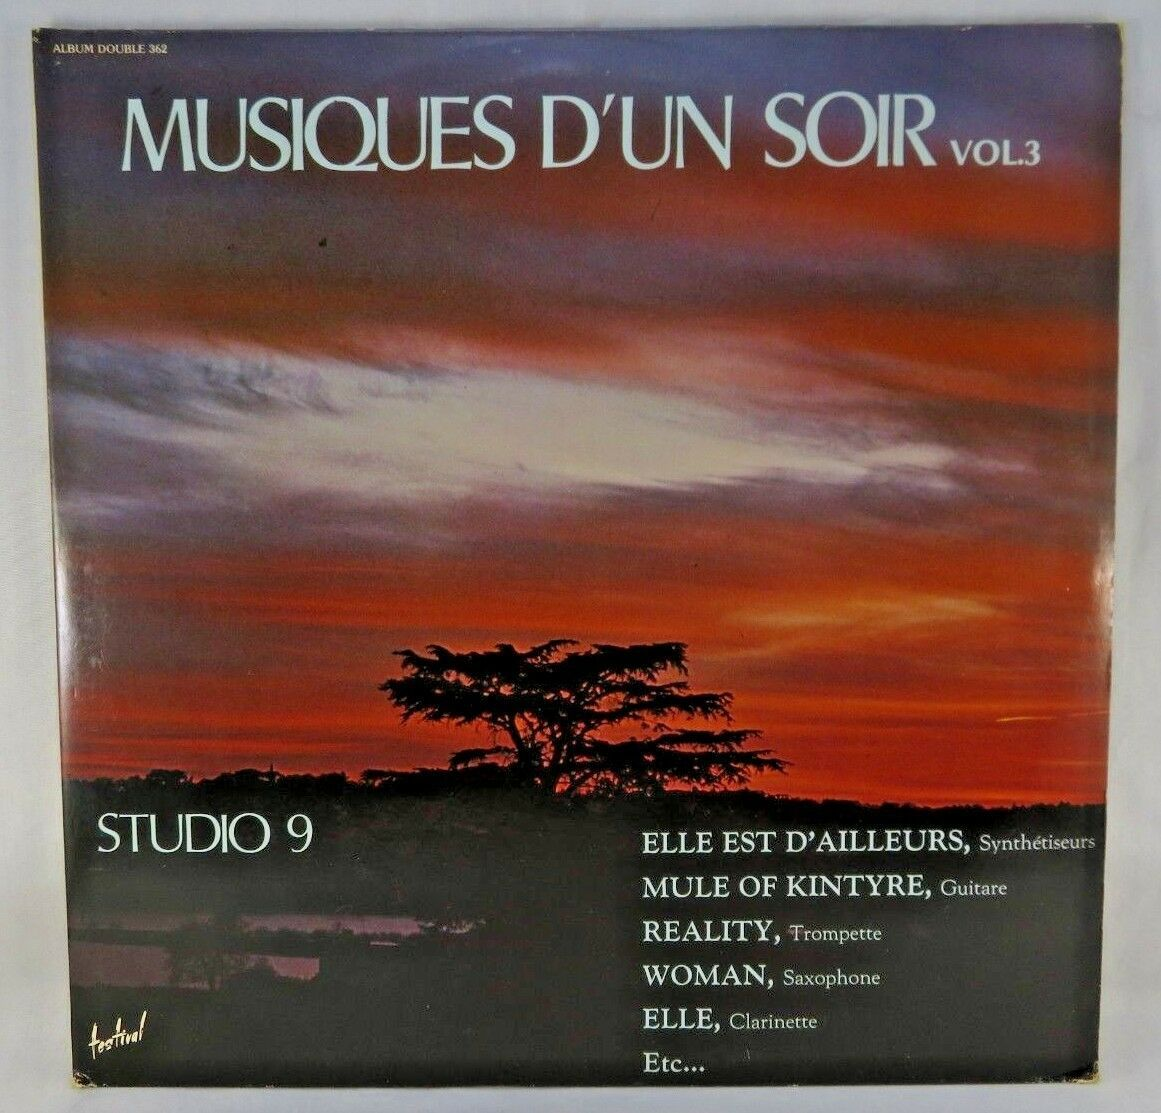 "Primary image for Studio 9 Musiques D'un Soir Vol.3 (2 x Vinyls, 12"", LP, French Album) Musidisc"